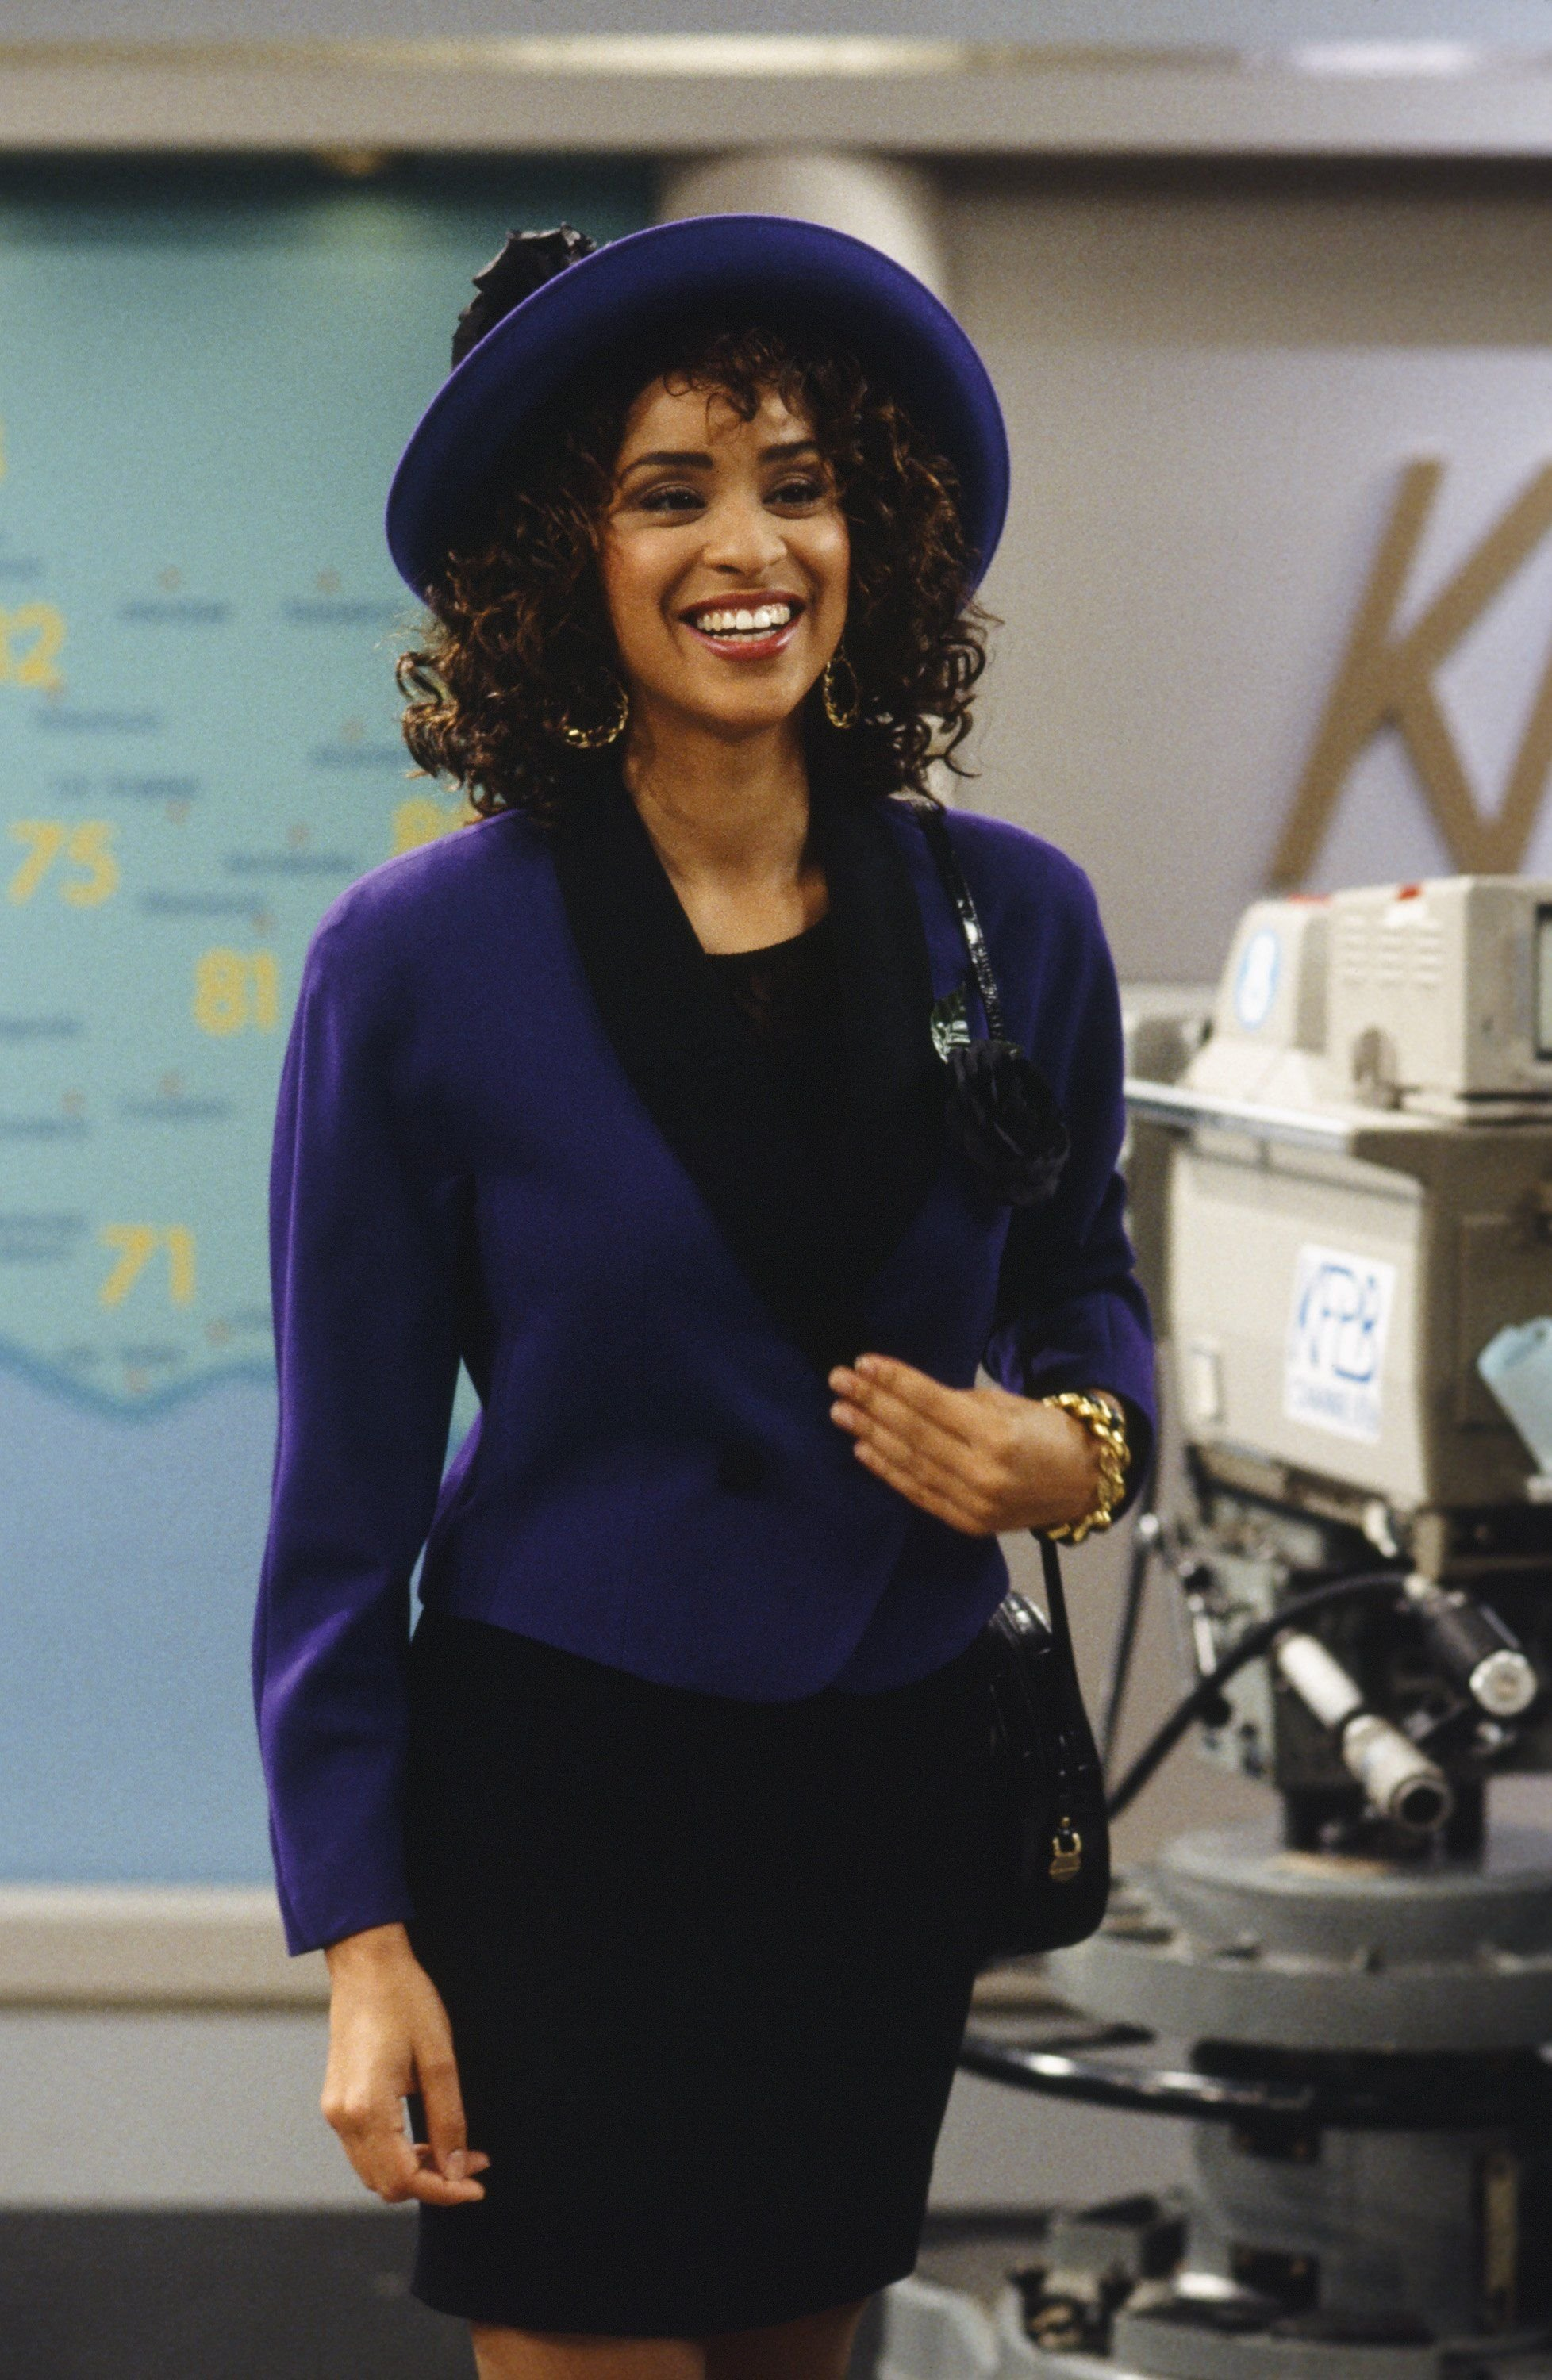 """Karyn Parsons as Hilary Banks in """"The Fresh Prince of Bel-Air"""" circa 1994 